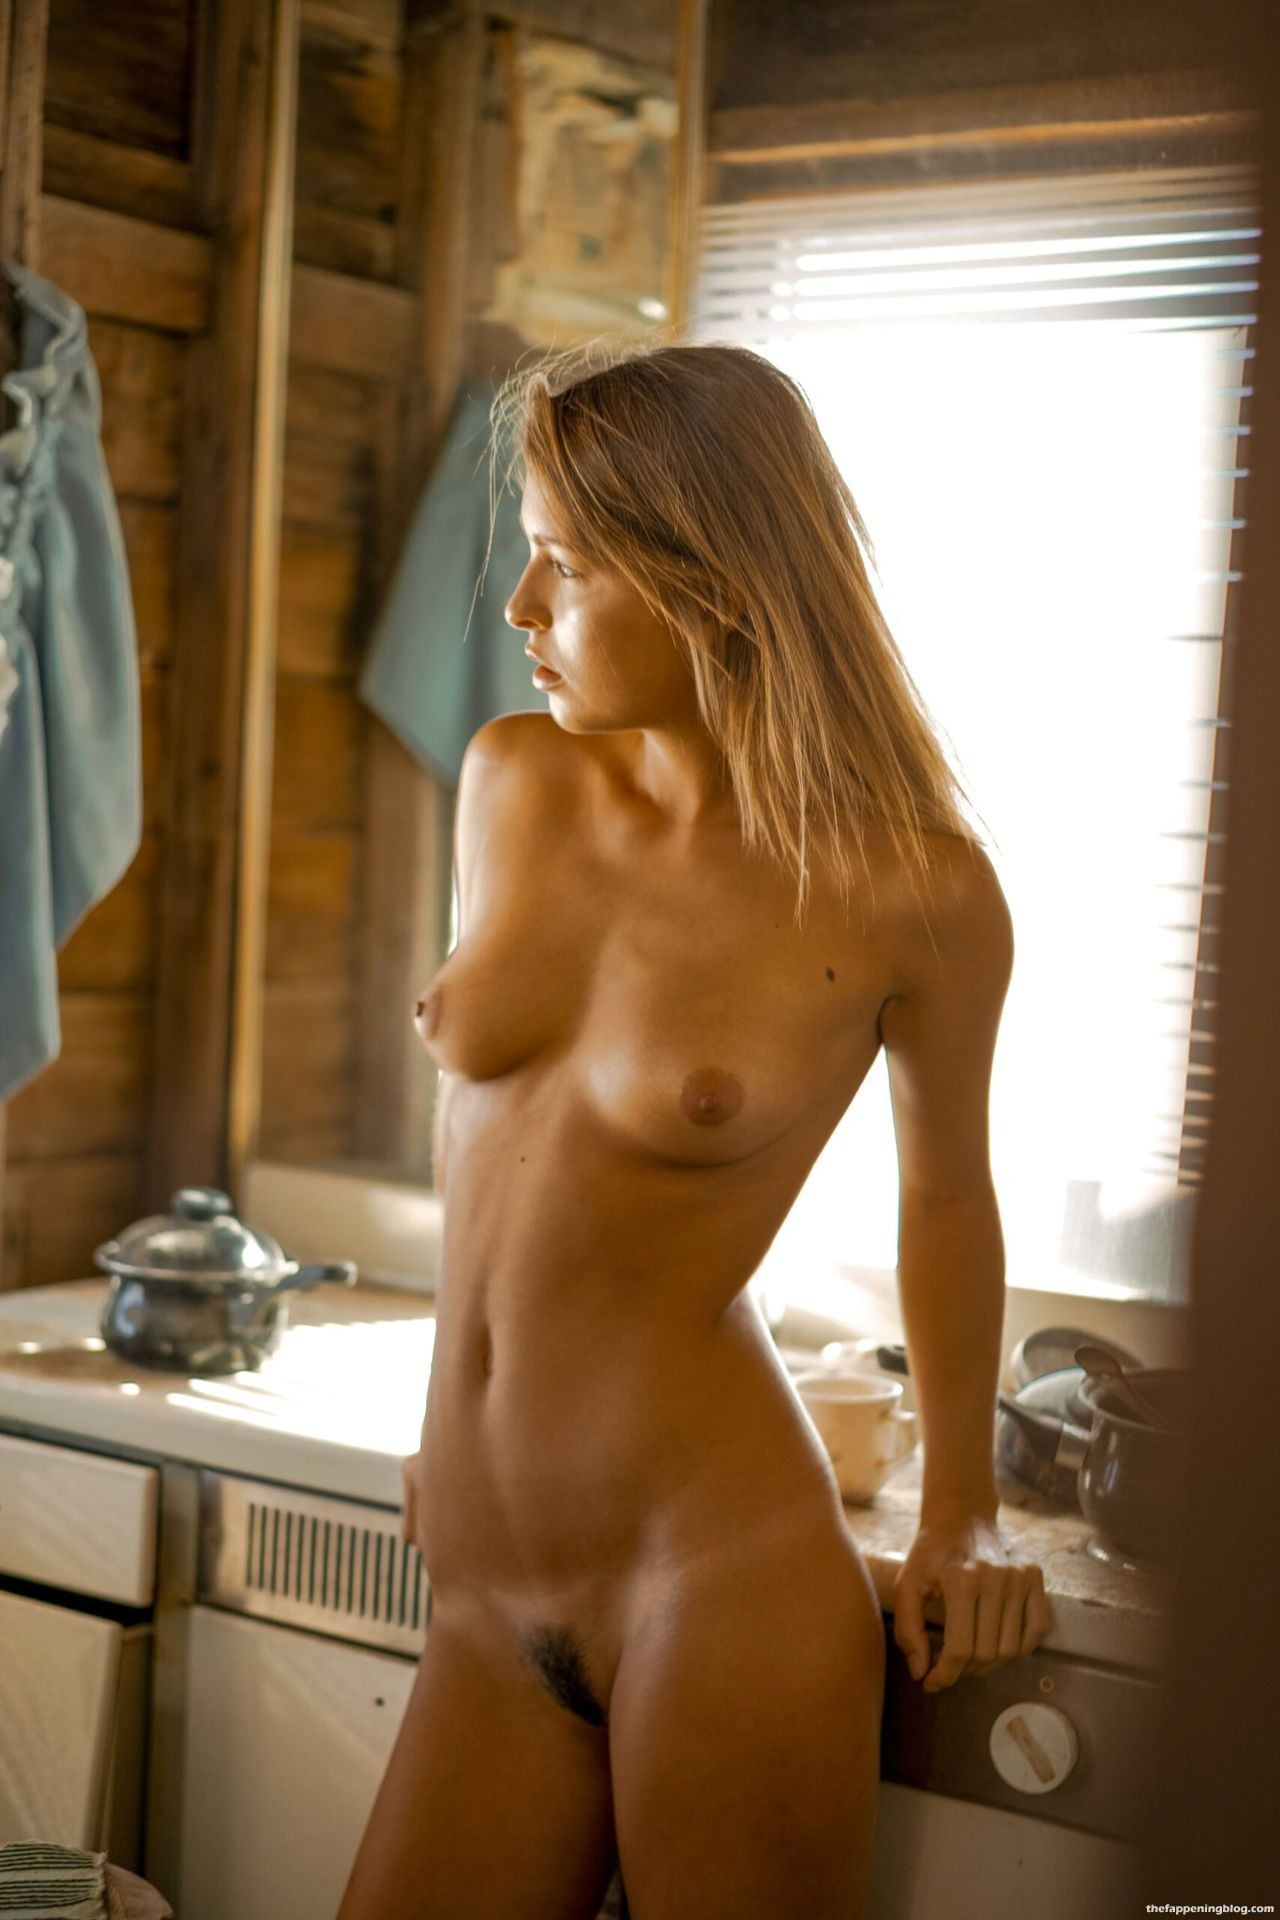 Marisa-Papen-Stunning-Naked-Body-1-scaled1-thefappeningblog.com_.jpg